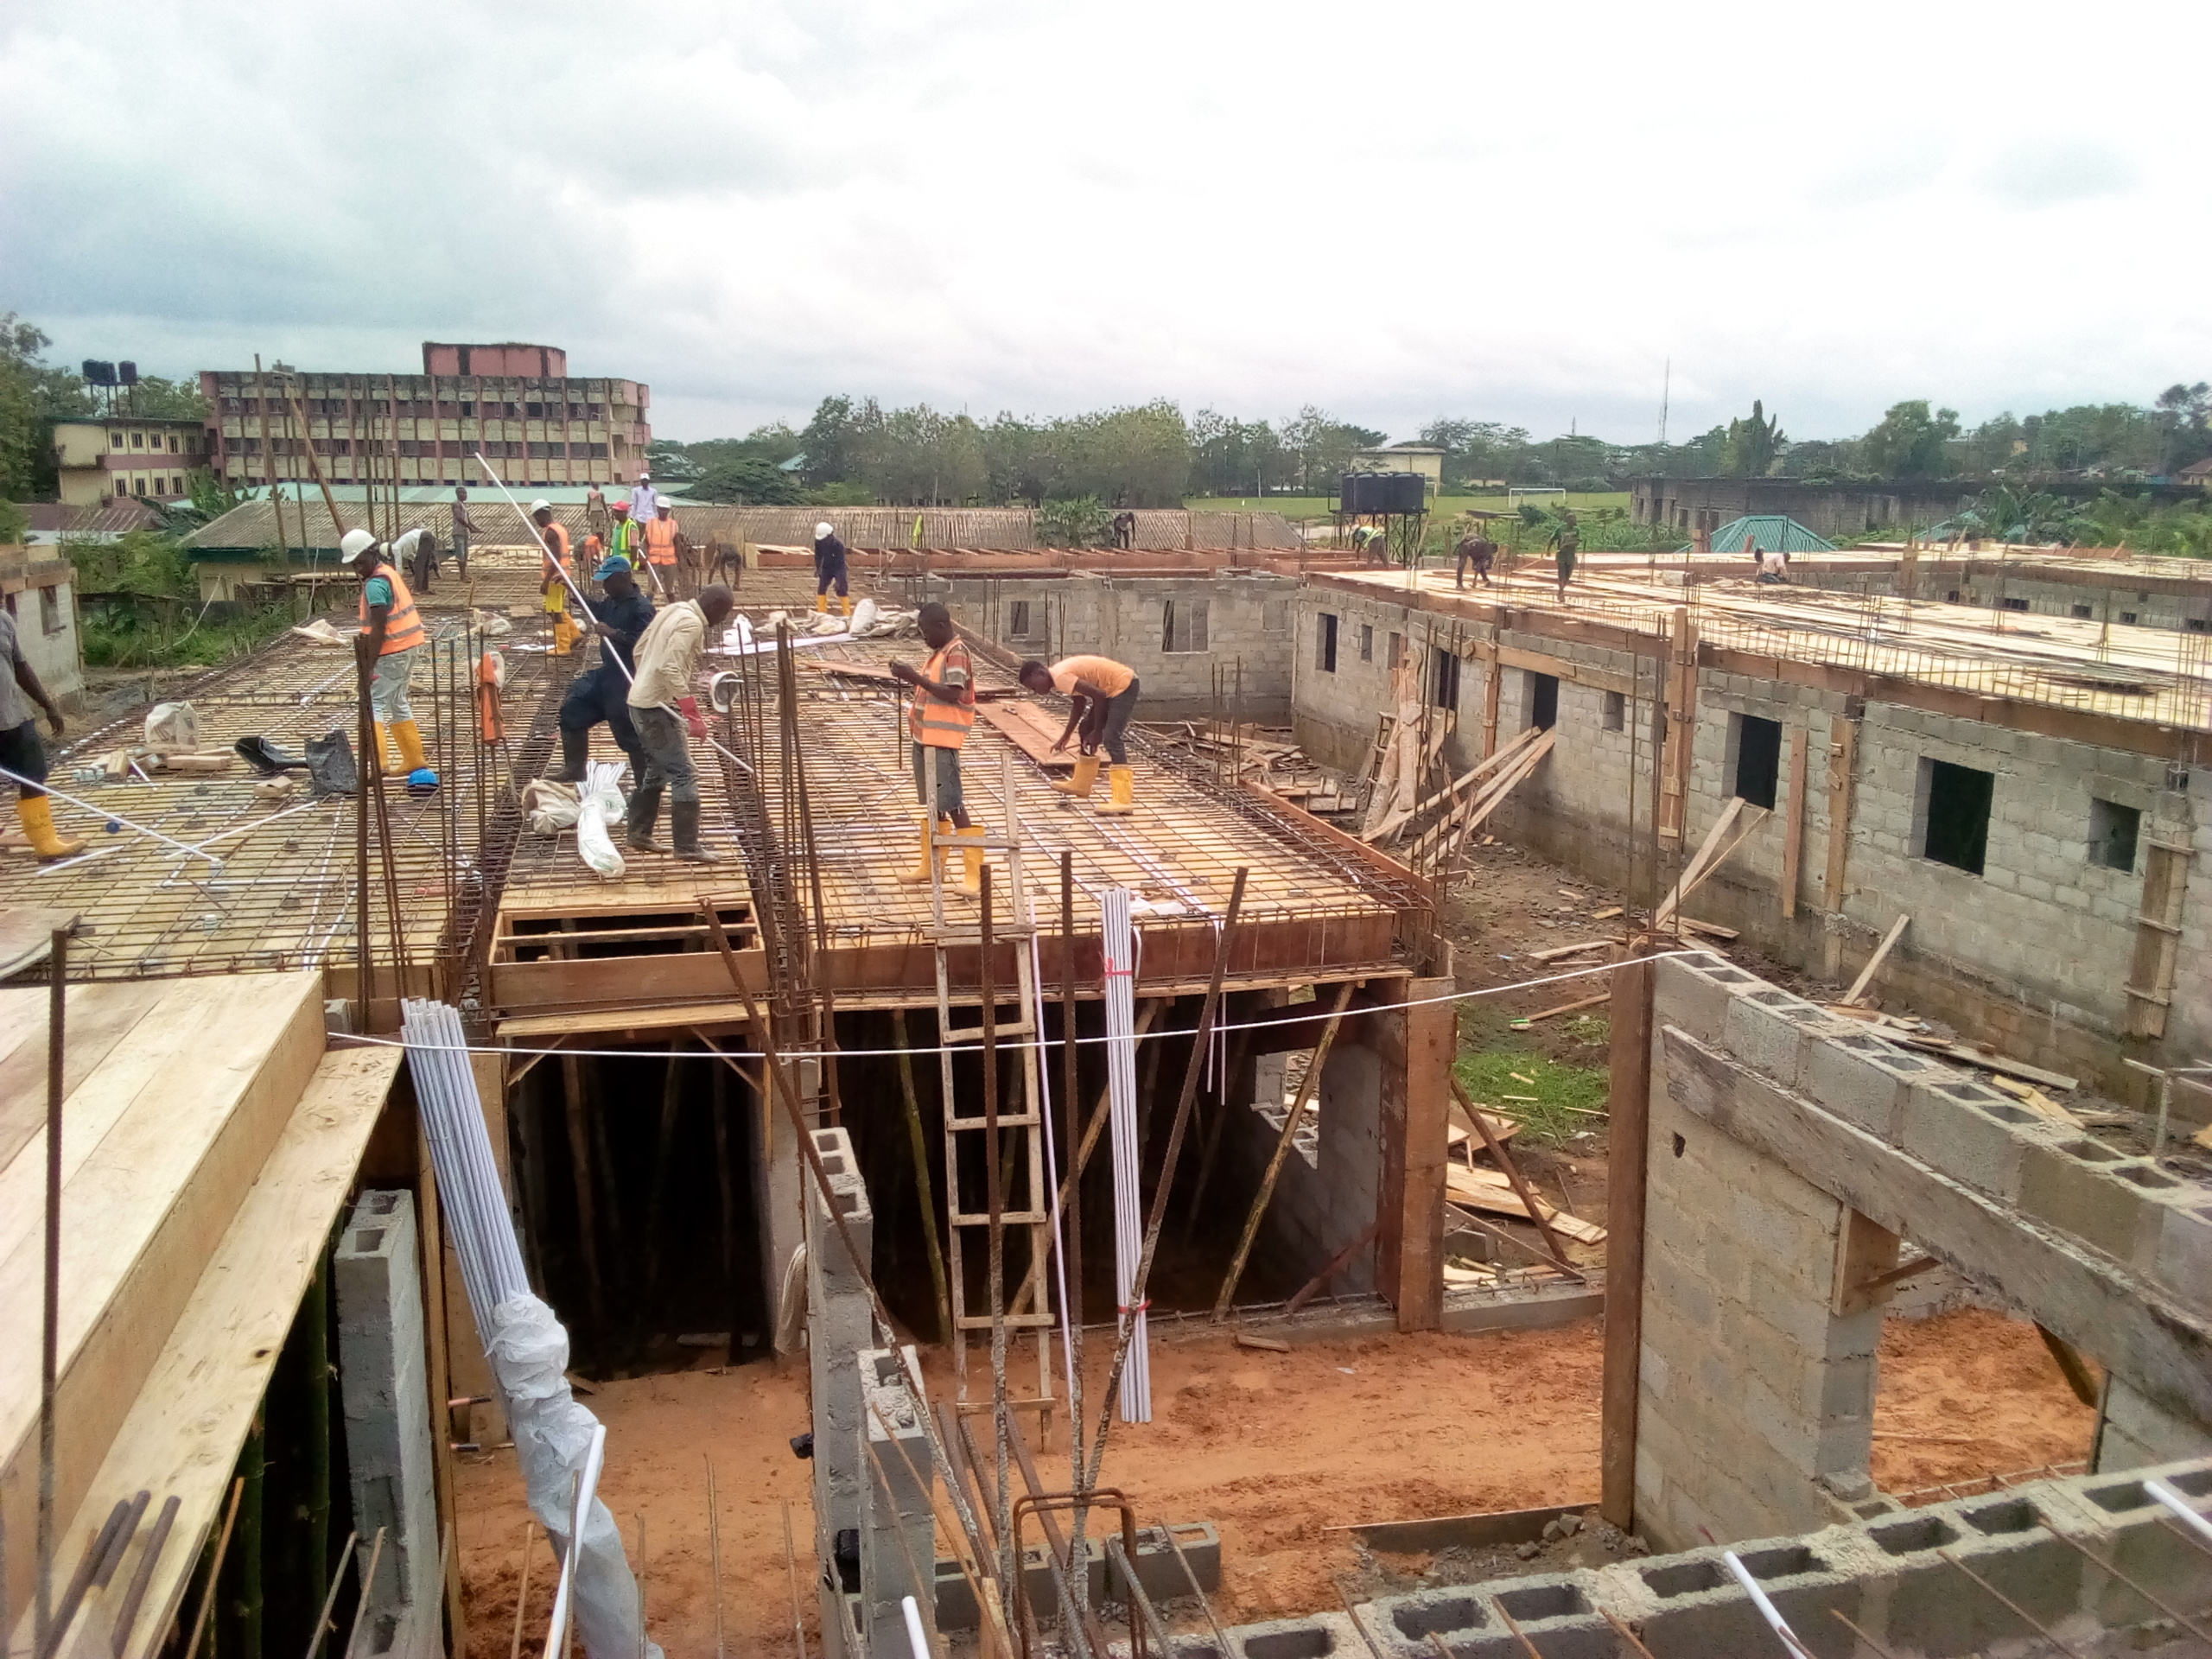 Unical To Take Delivery Of 400-Room Hostel In December 2018